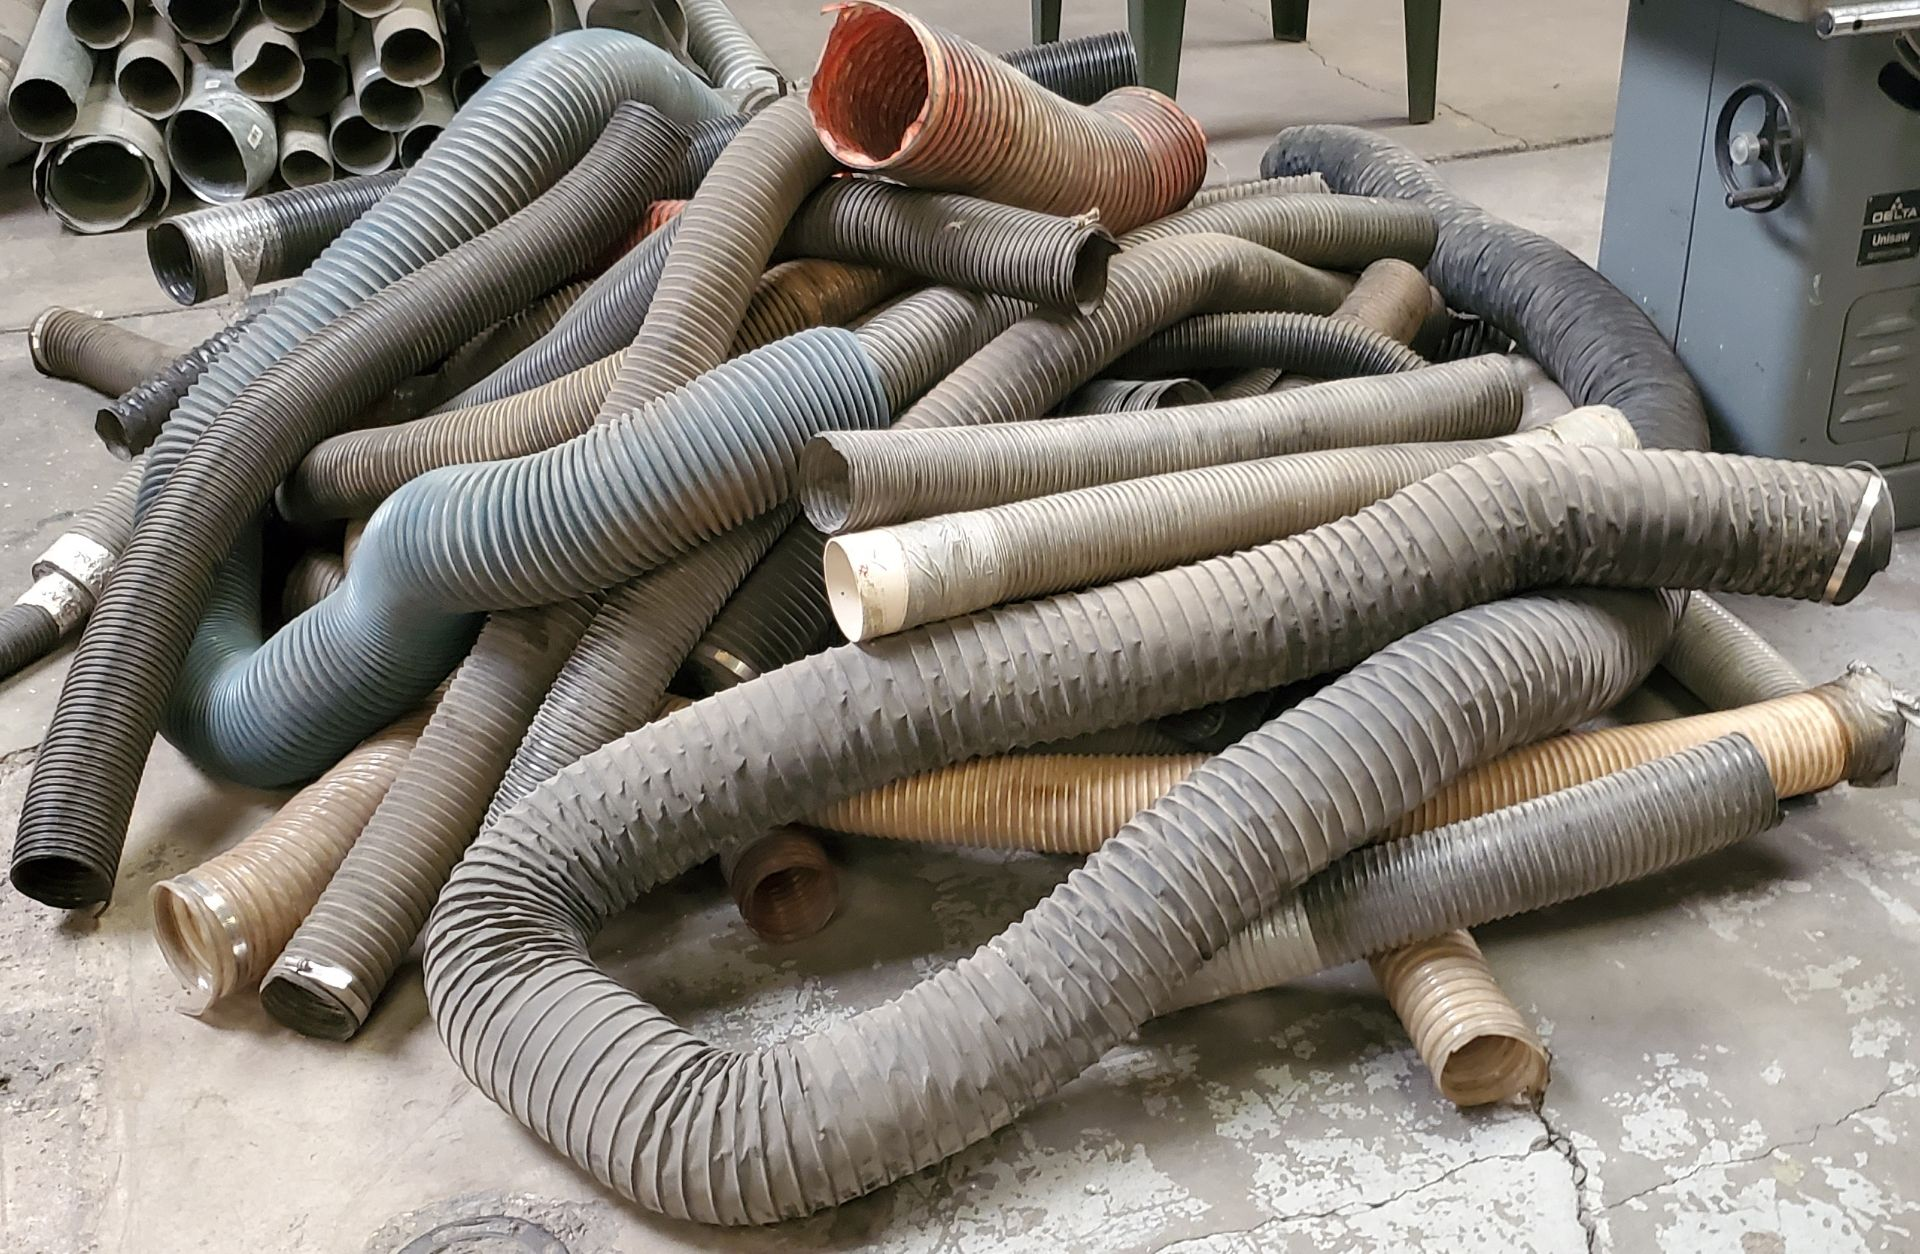 Lot 14 - Misc Hoses- 4inch, 5inch, 6inch, 7inch, diameter